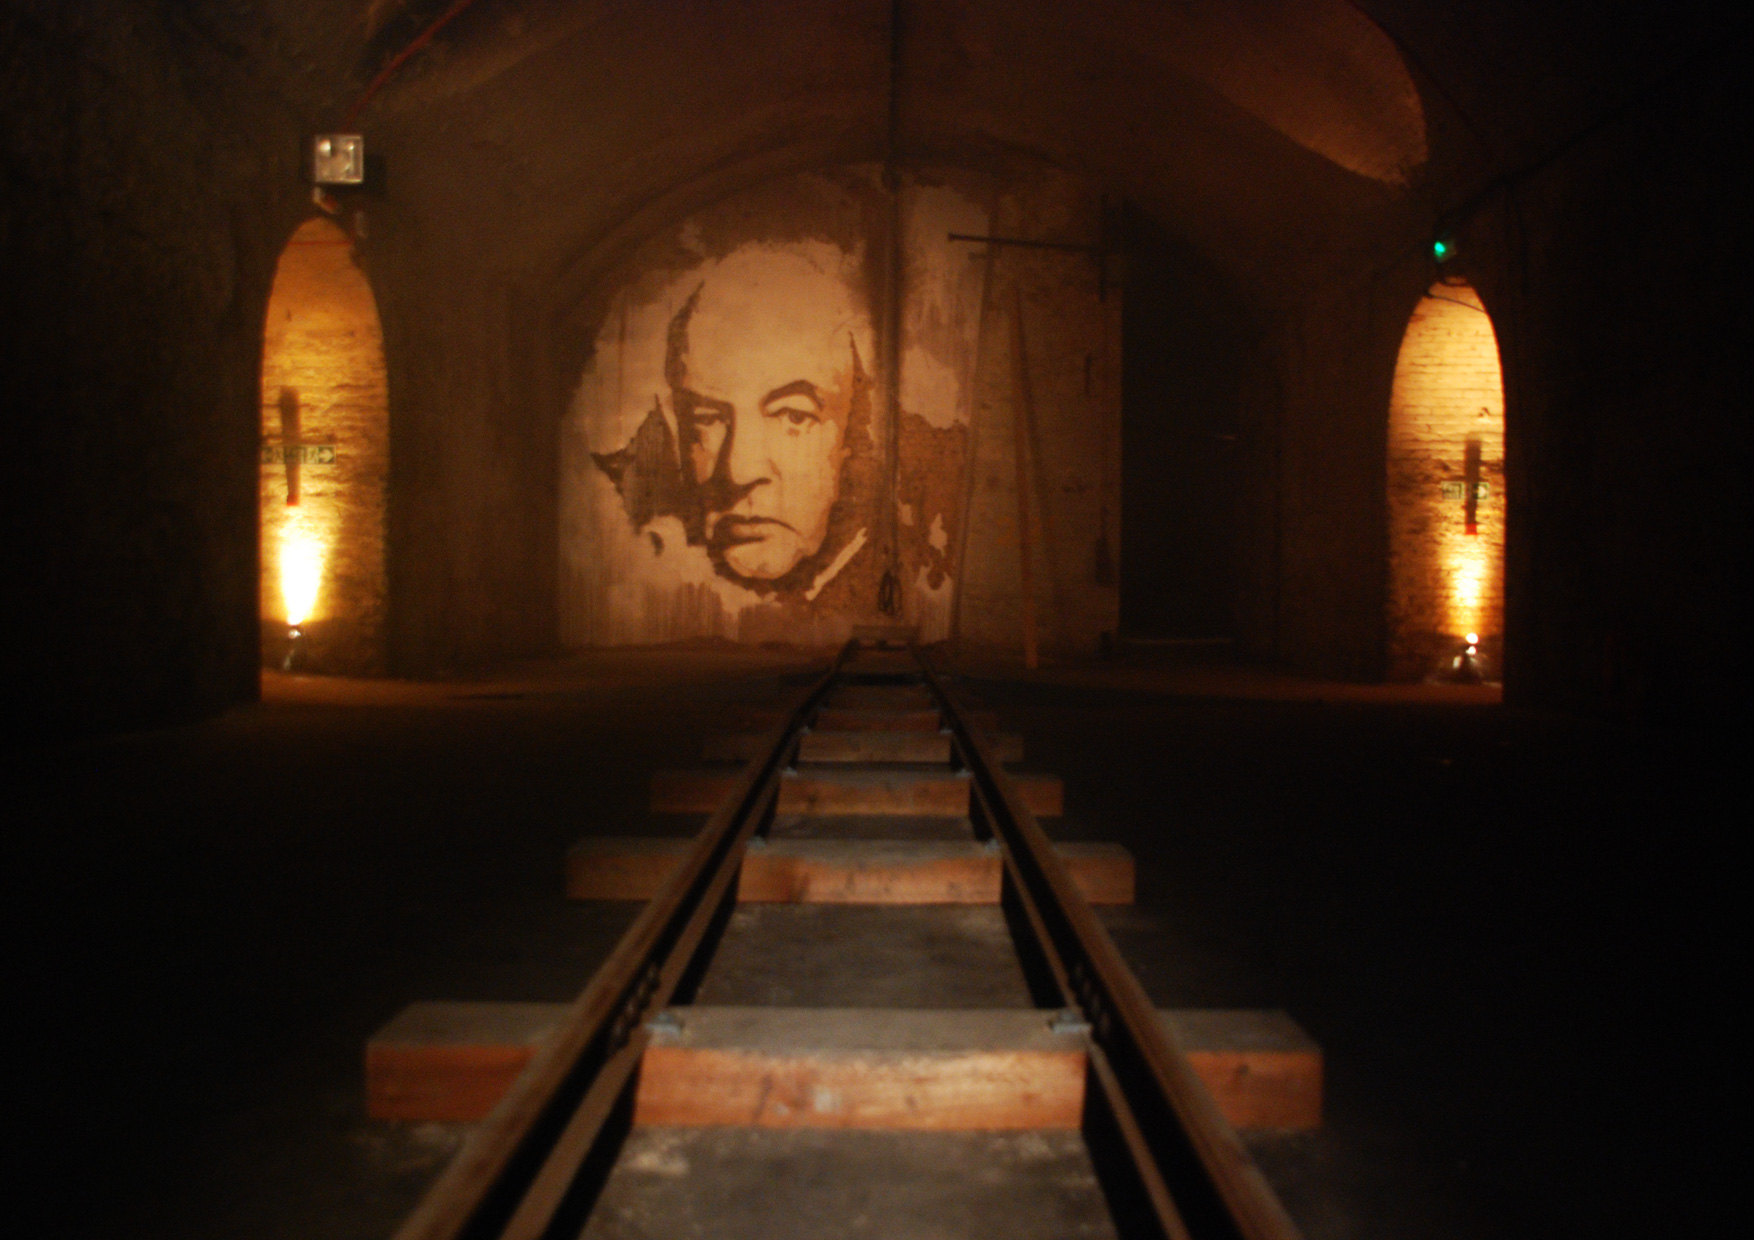 Close of train tracks with image on the wall